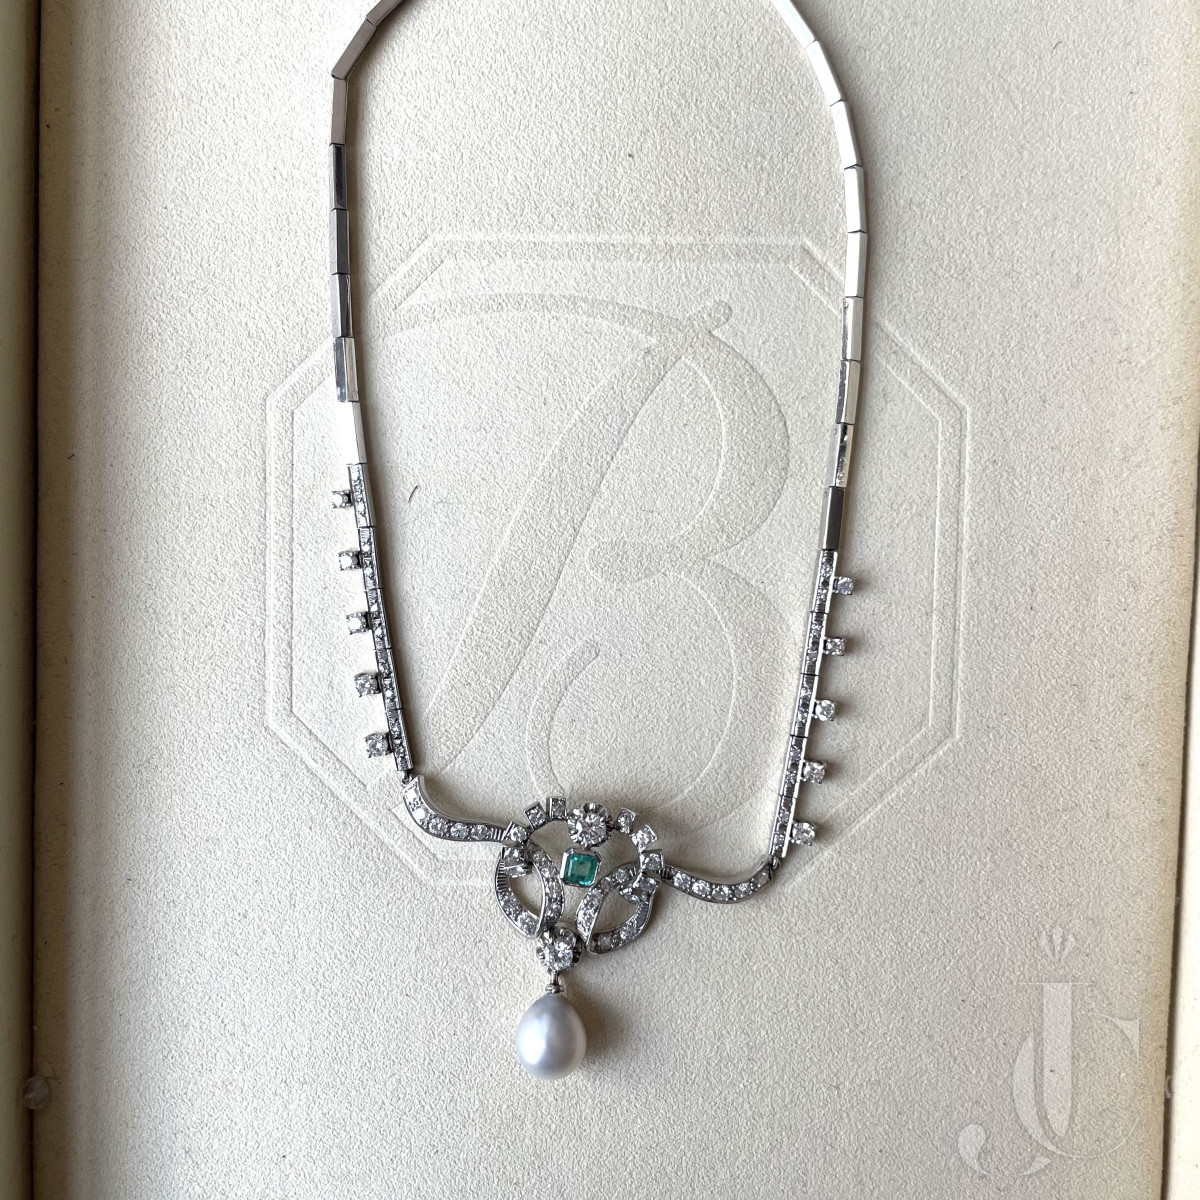 Large Natural Pearl Drop in18 KT gold diamond necklace with little emeralds